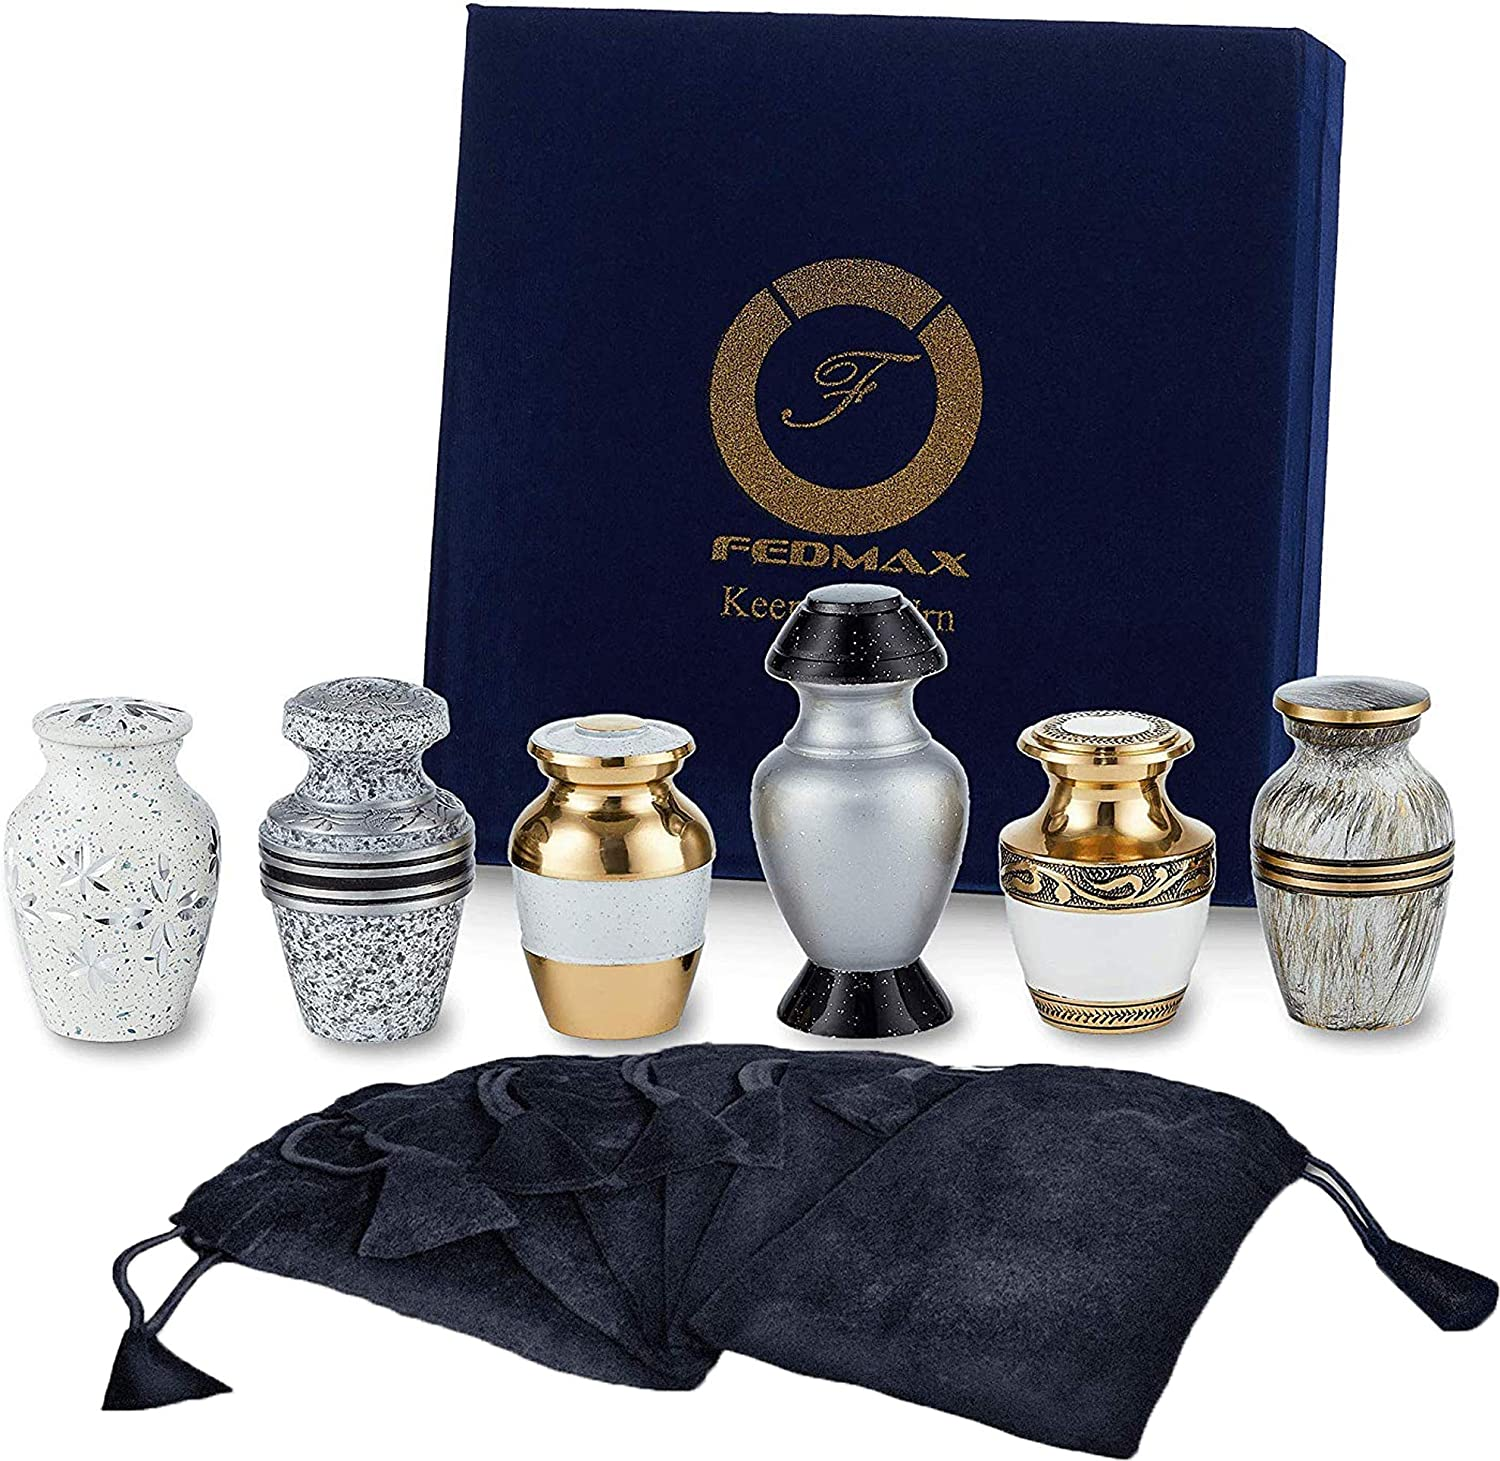 Fedmax Small Urns for Human Ashes - Set of 6 White Decorative Cremation Keepsakes with Velvet Box - Memorial Urn and Burial Ash Storage for Family & Loved Ones